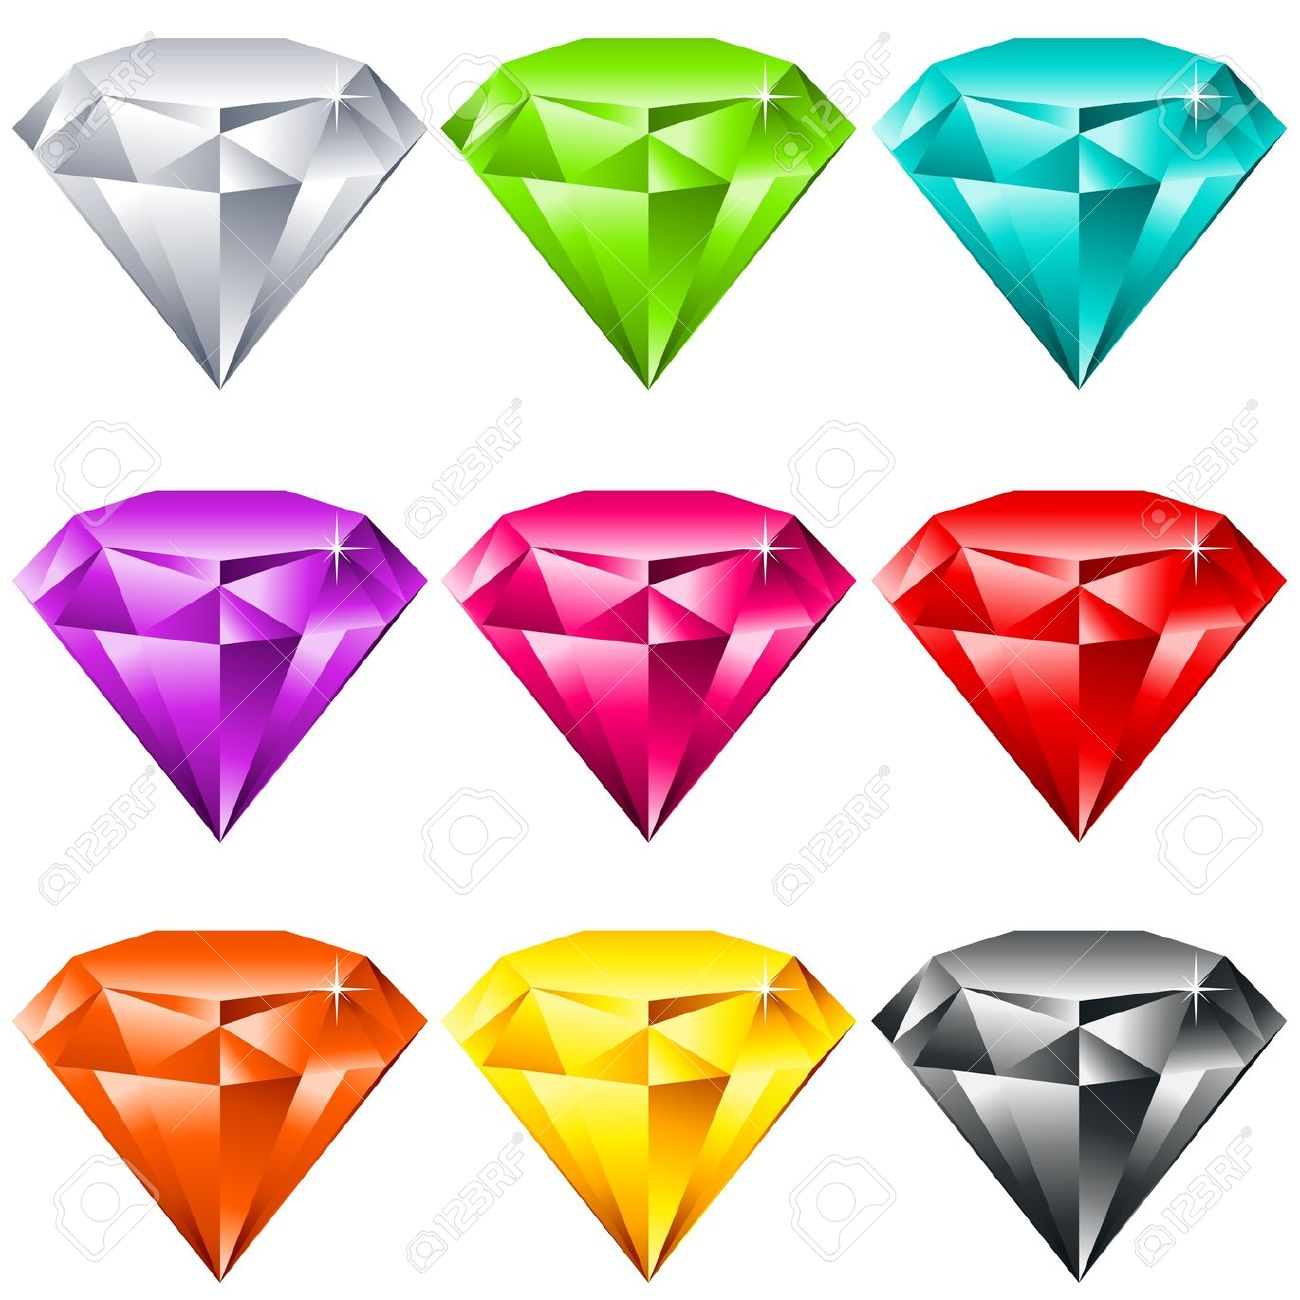 Jewels clipart #12